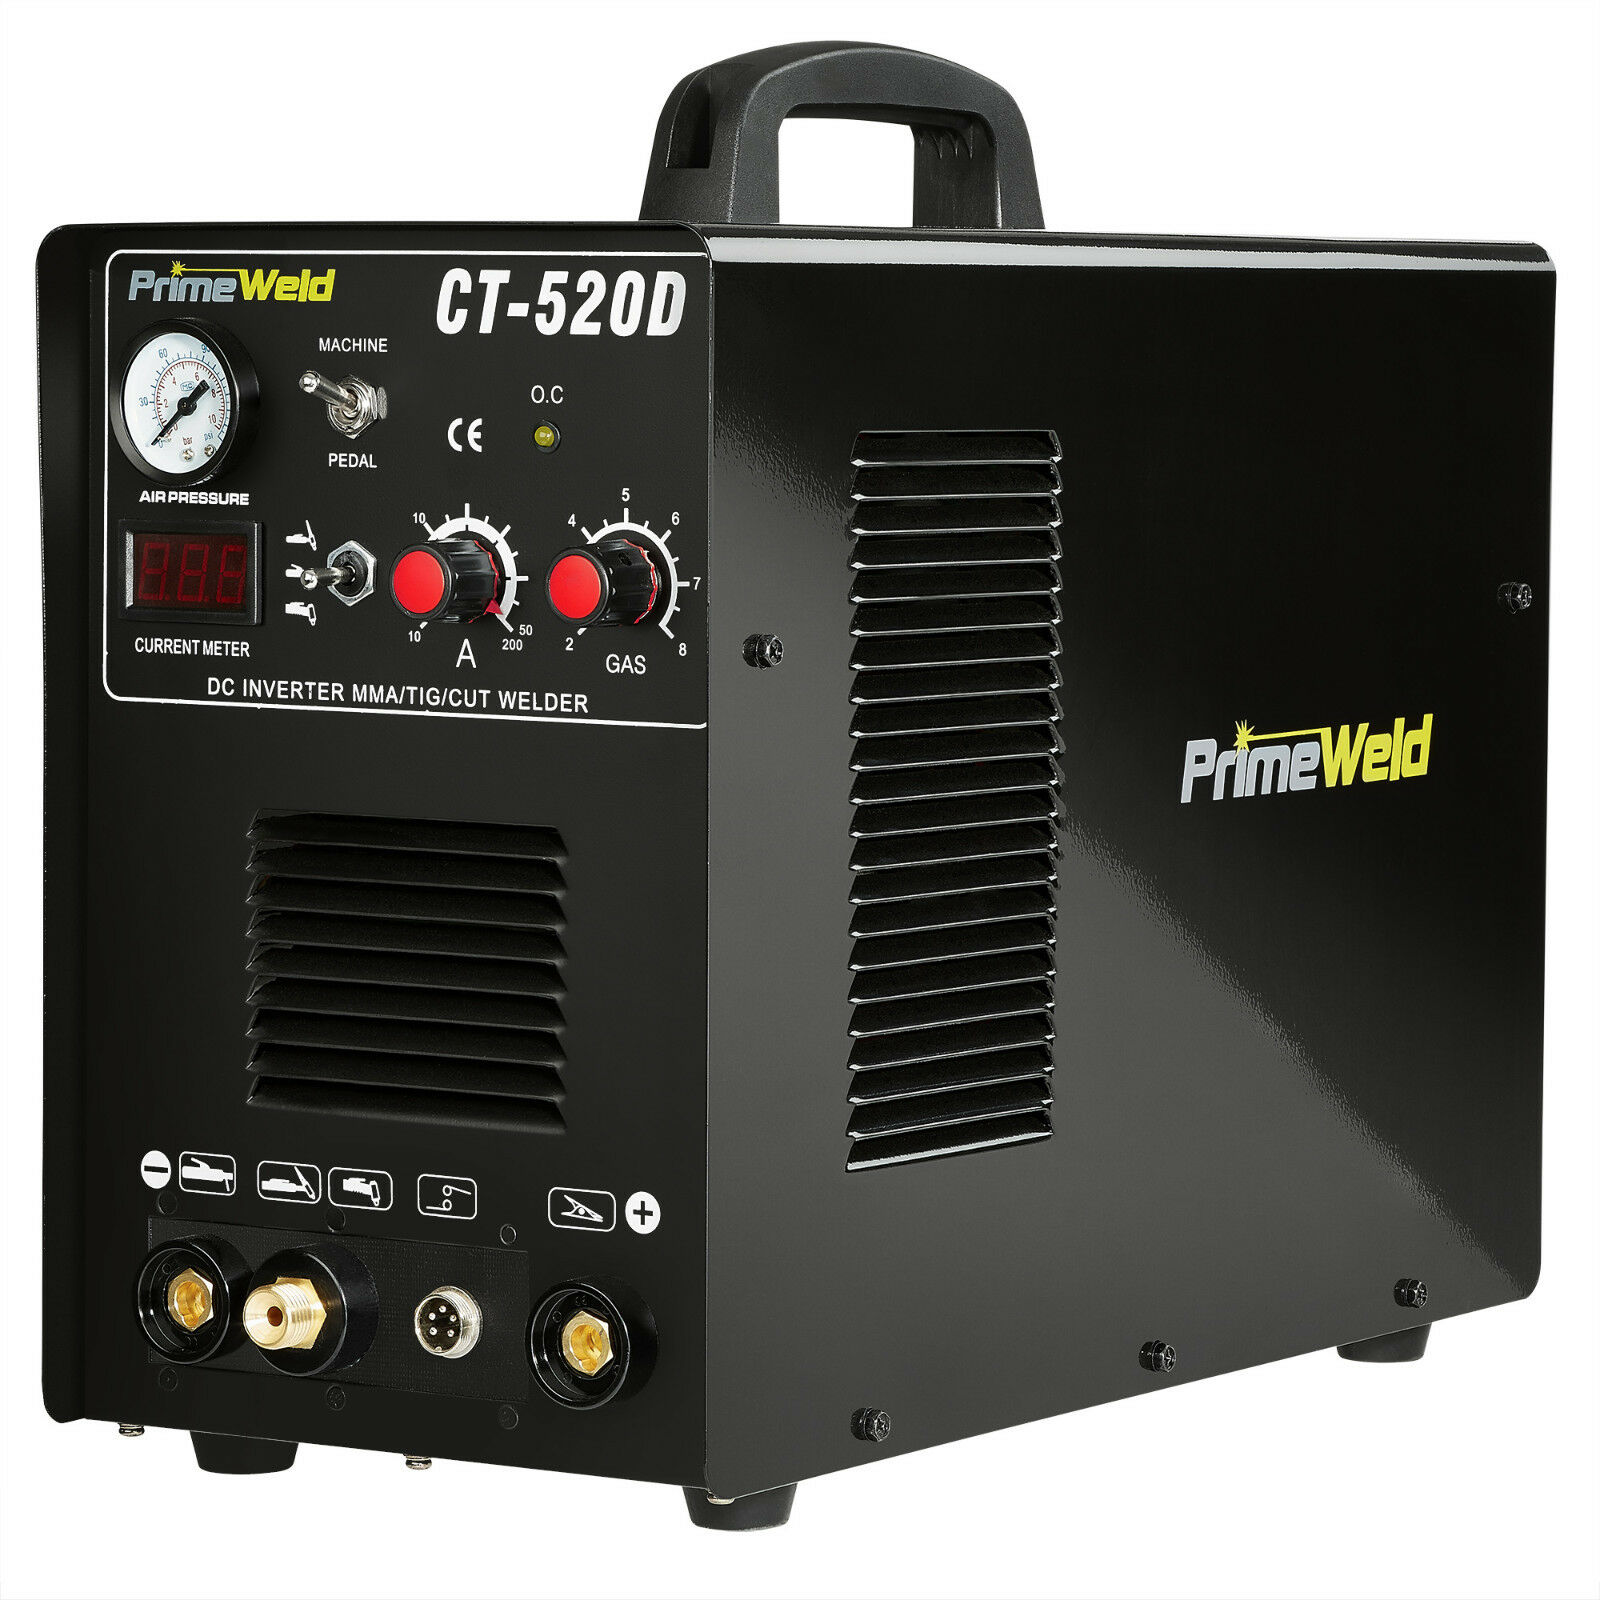 PRIMEWELD Plasma Cutter CT520D 50 A /200 A Tig Arc Mma Welder 110/220V  NEW. Buy it now for 379.00